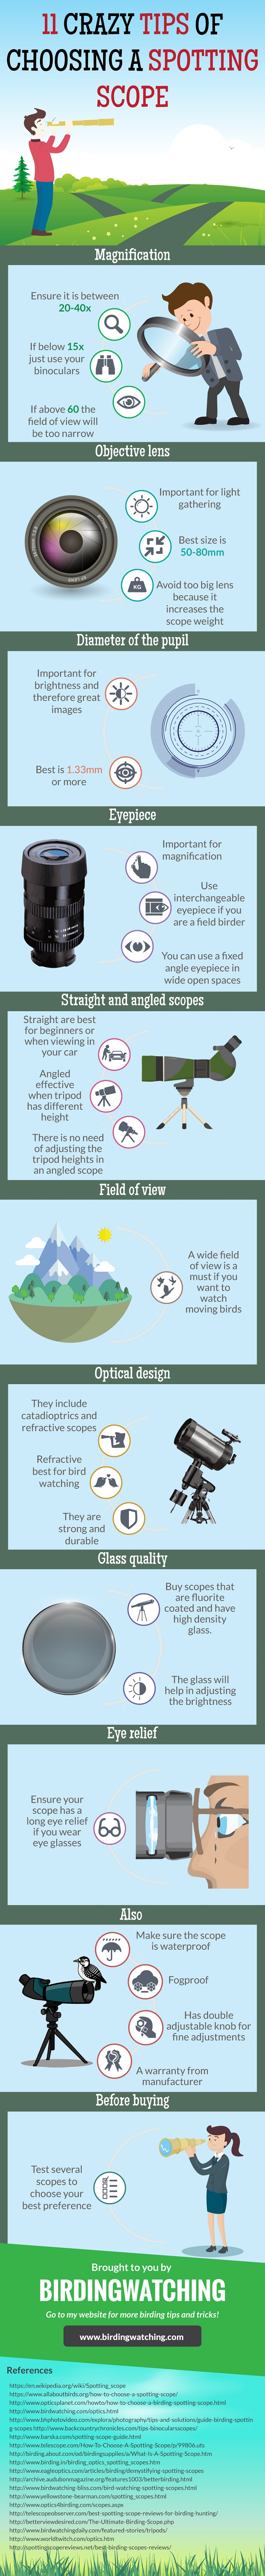 spotting_scope_infographic